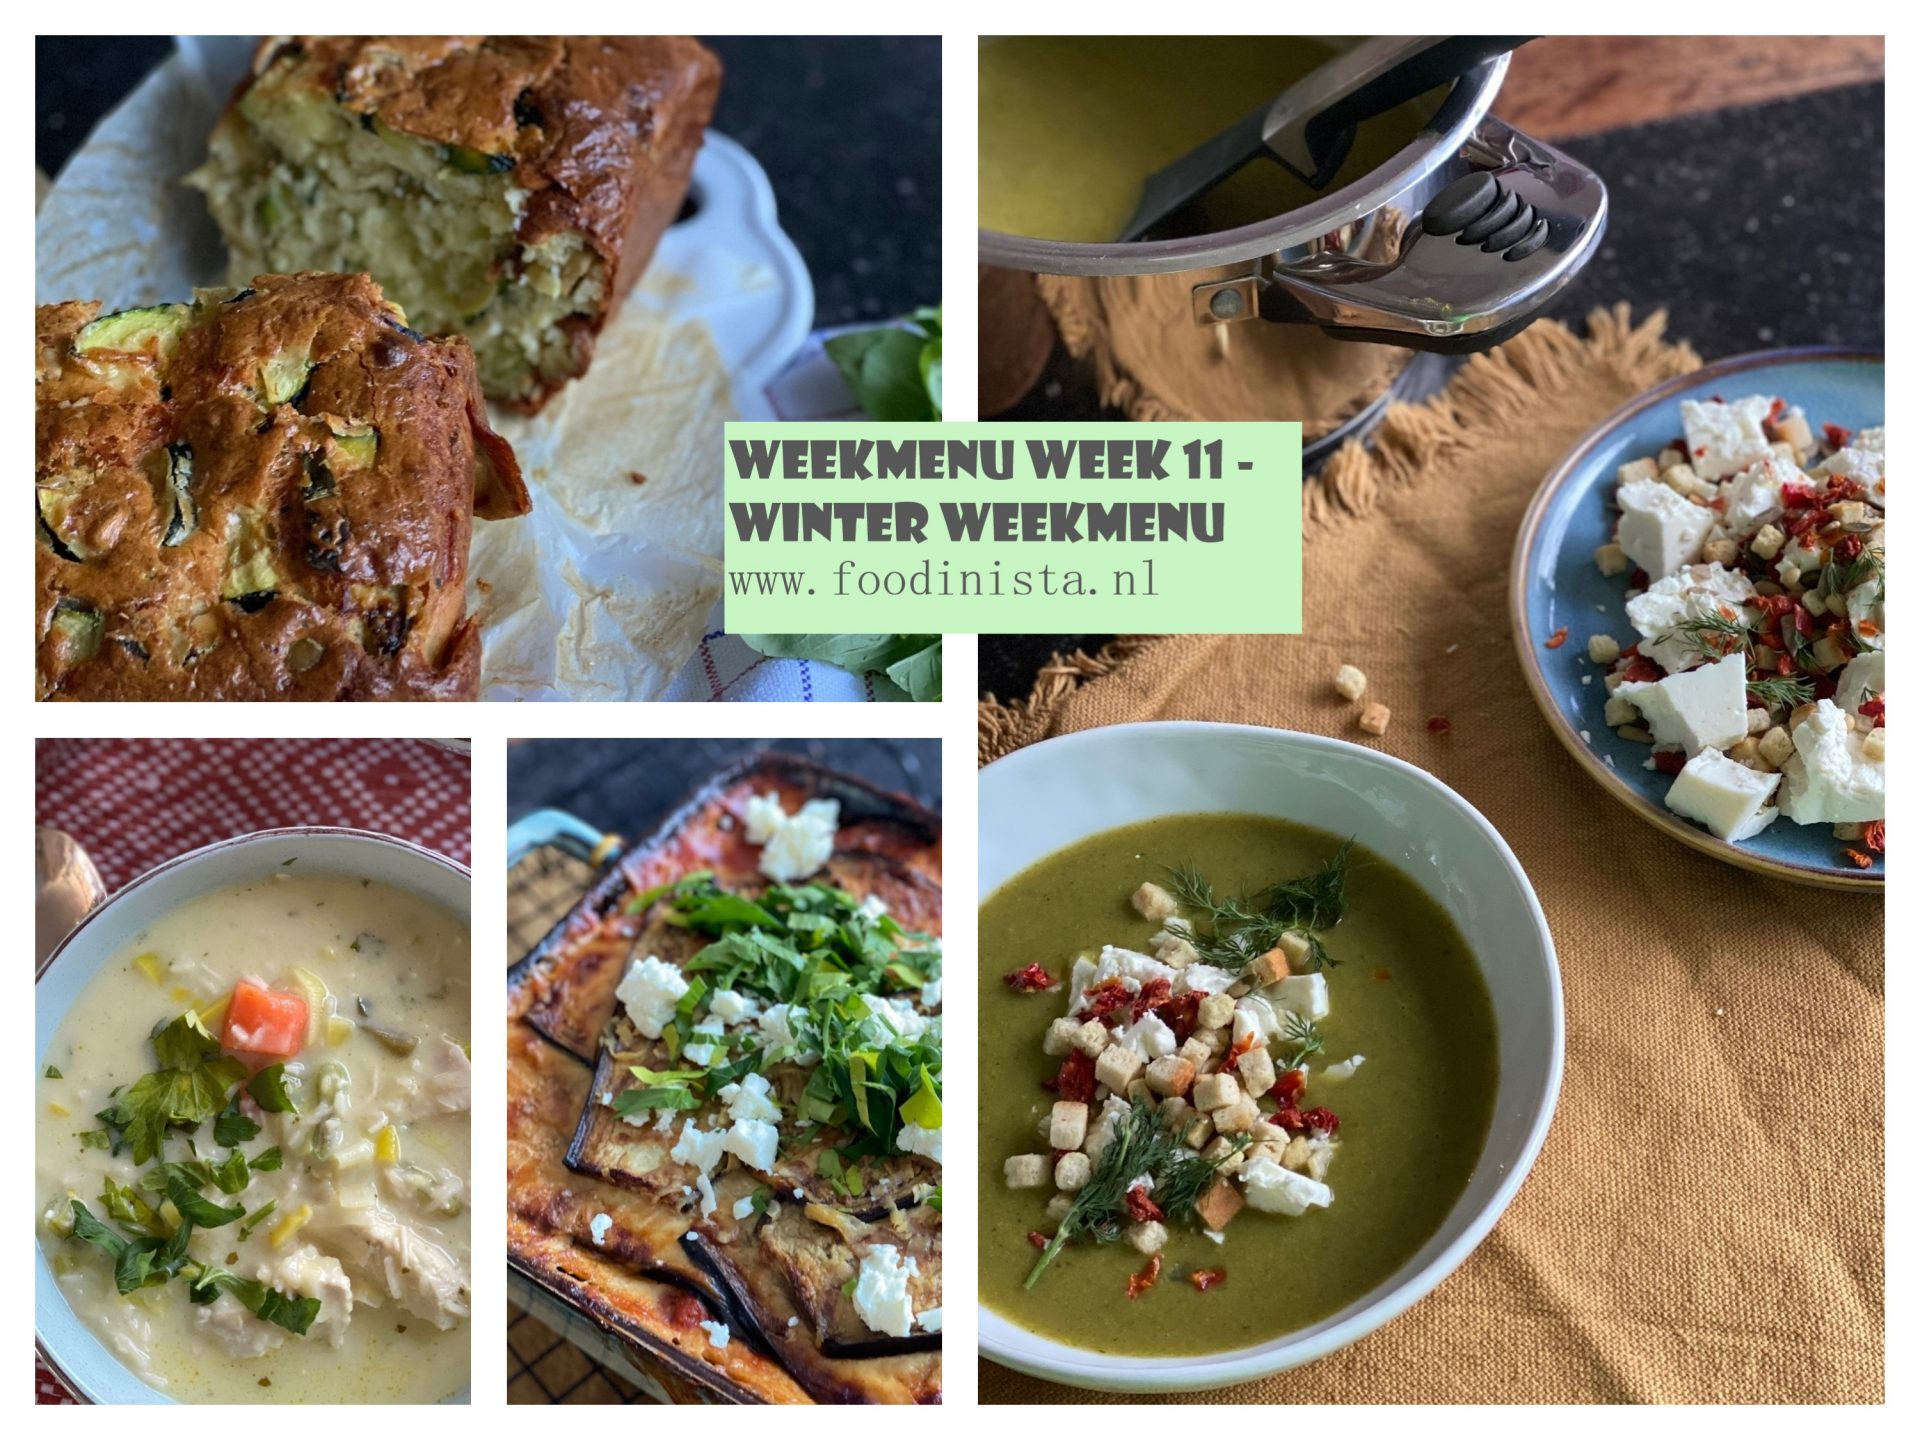 Winter Weekmenu Week 11 Foodblog Foodinista